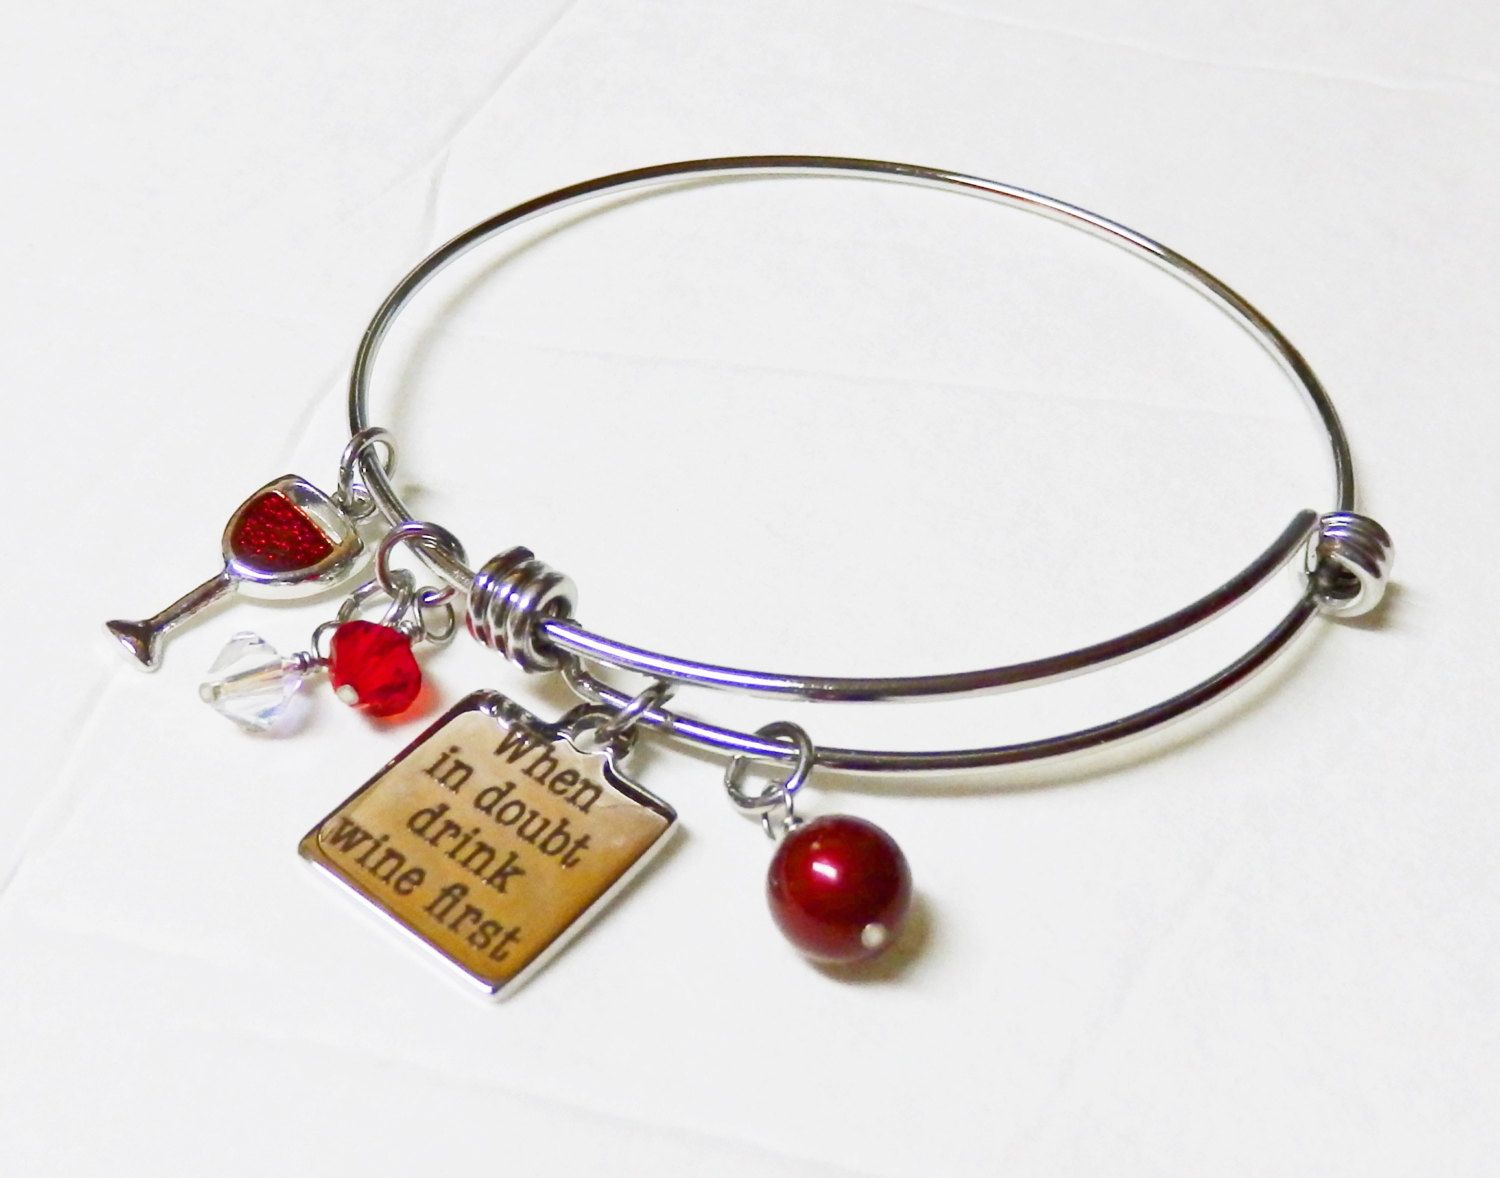 Stainless Steel Expandable Bangle Bracelet, Drink Wine First Charm ...